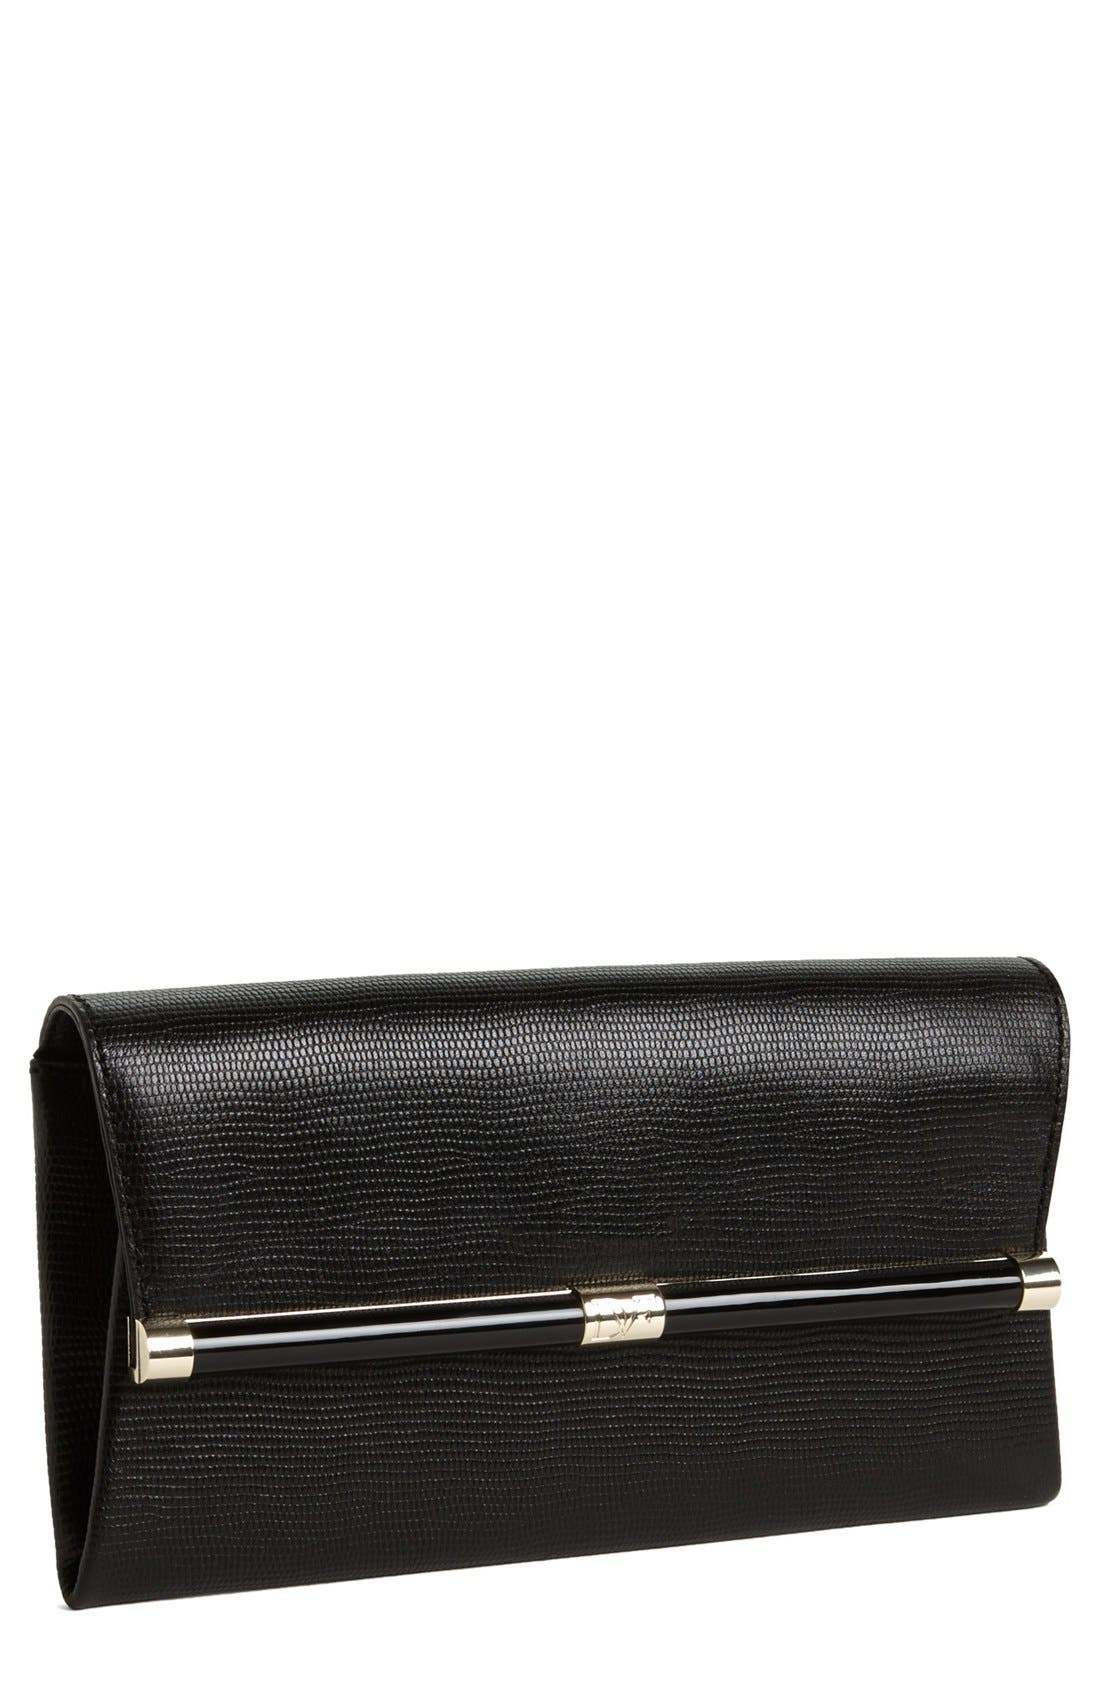 Main Image - Diane von Furstenberg '440' Leather Envelope Clutch